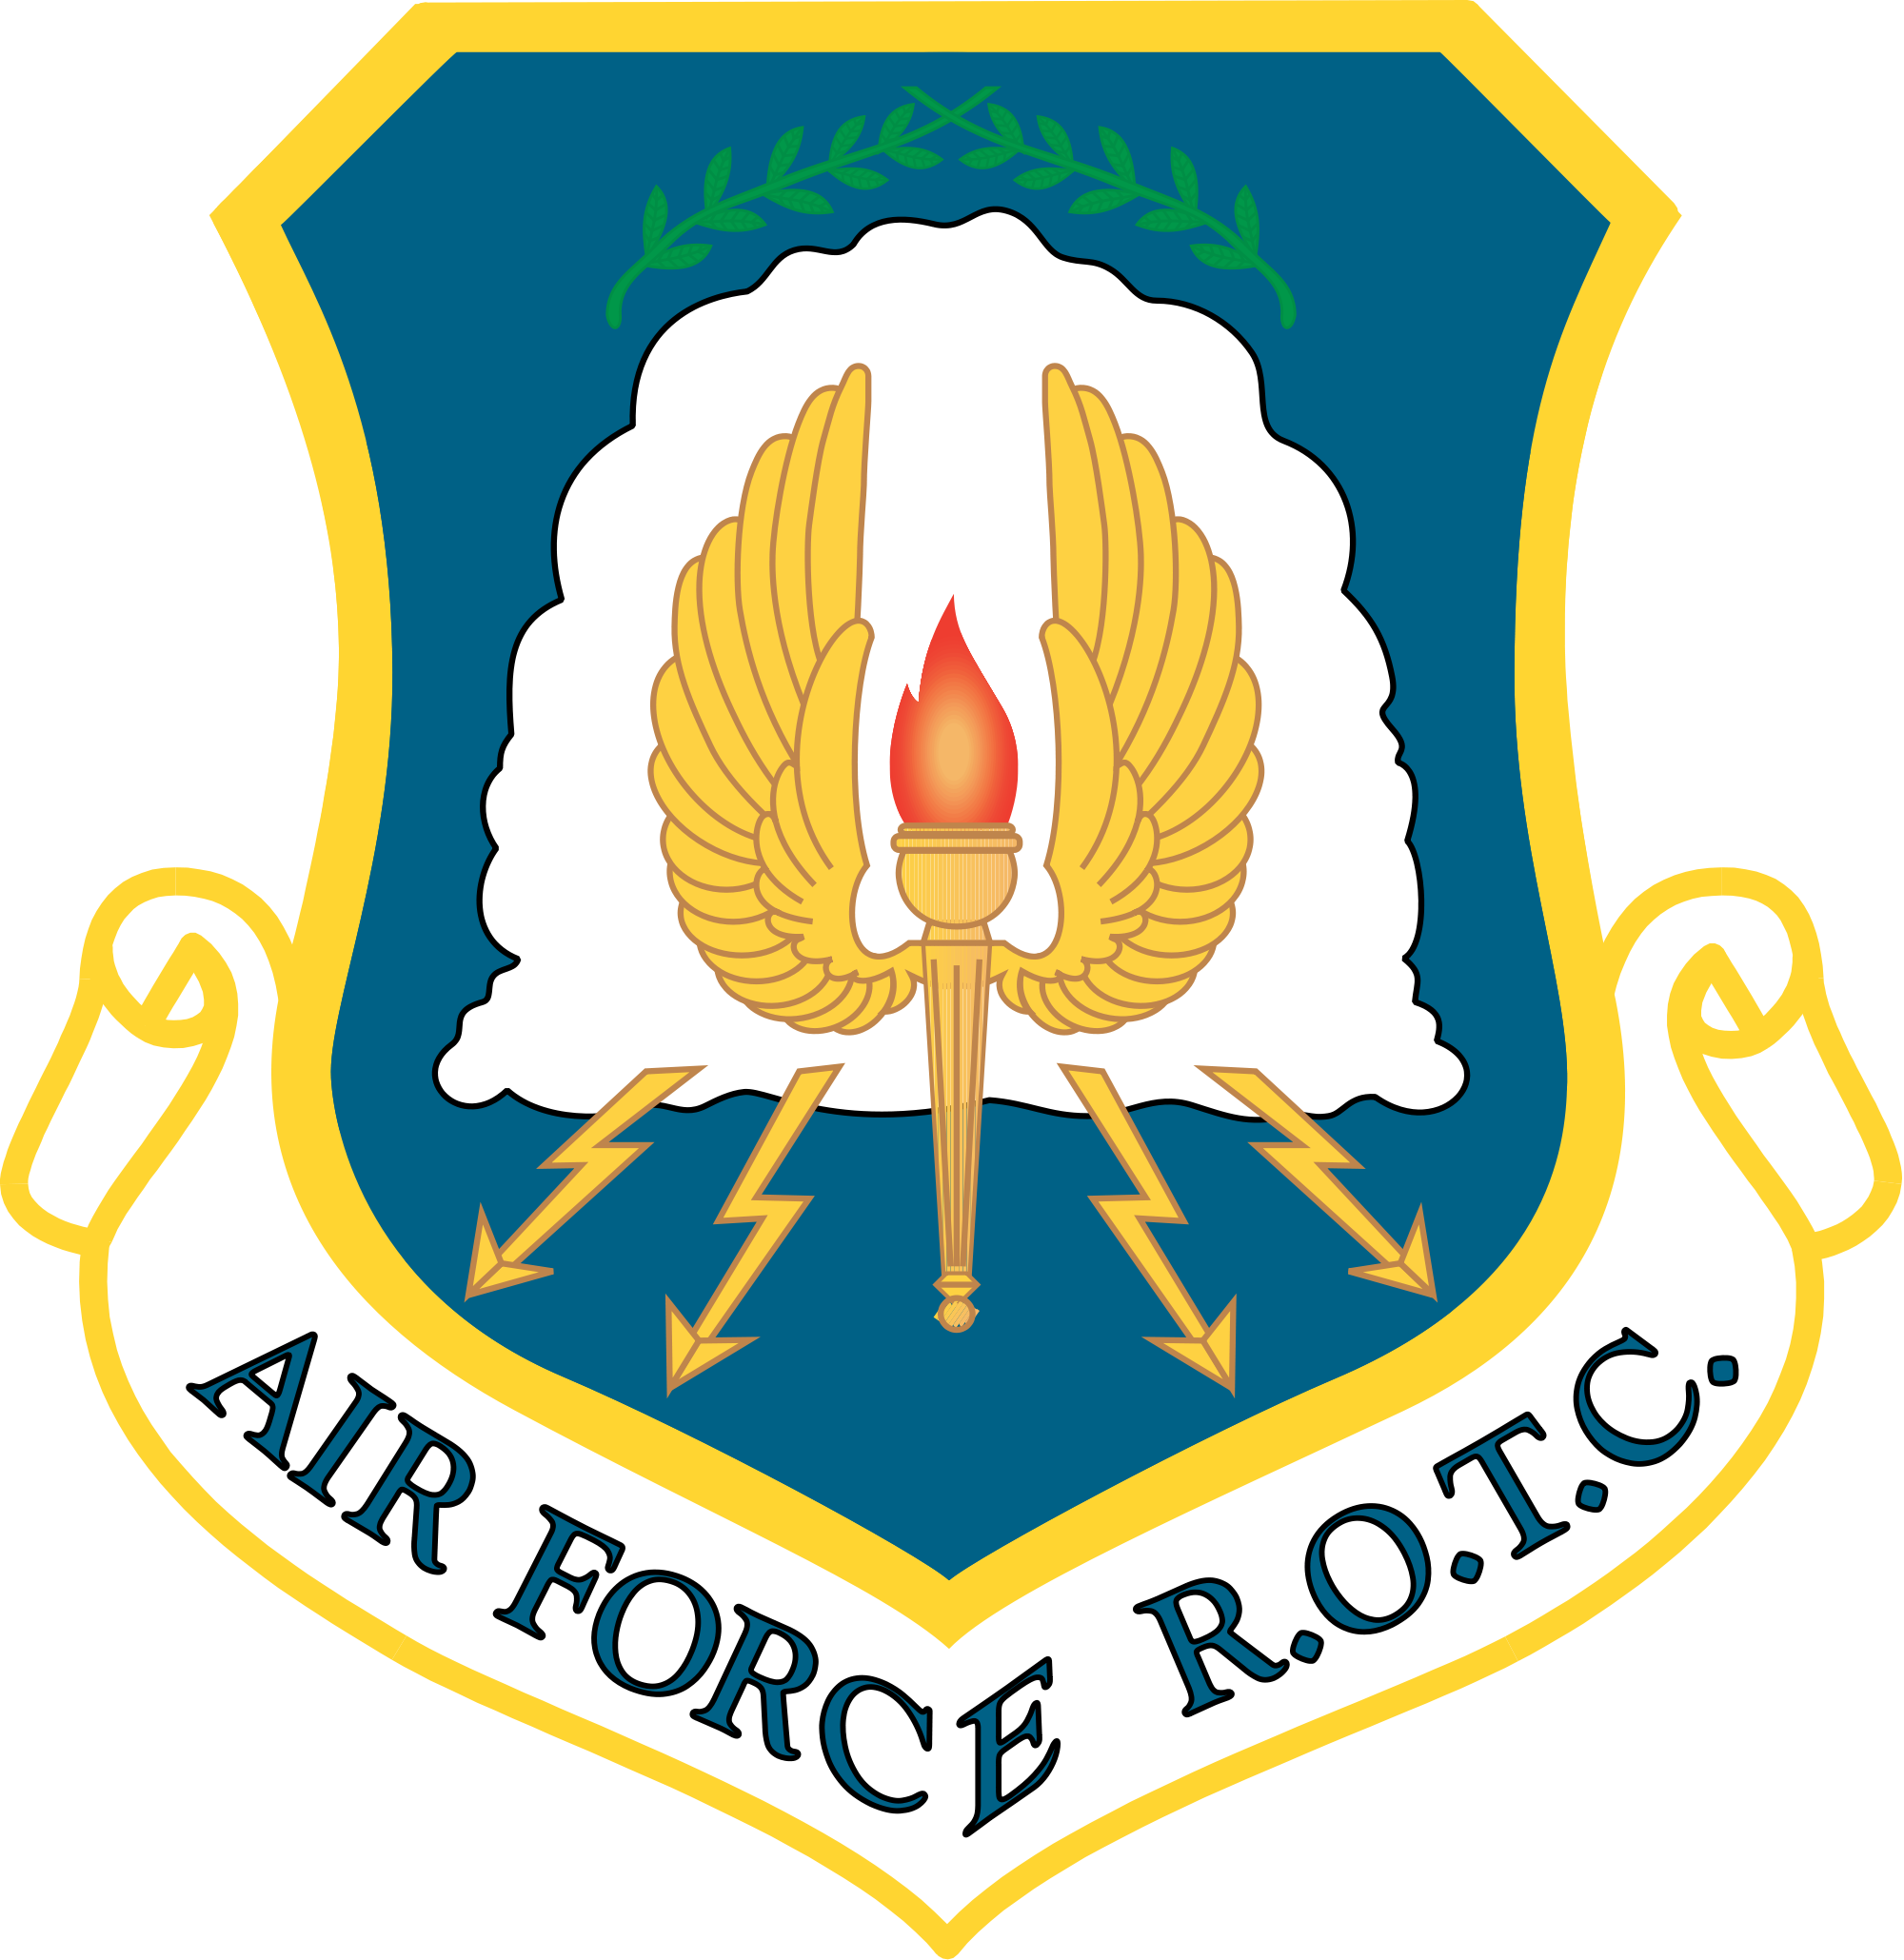 Shield clipart air force Of United States Force File:Shield